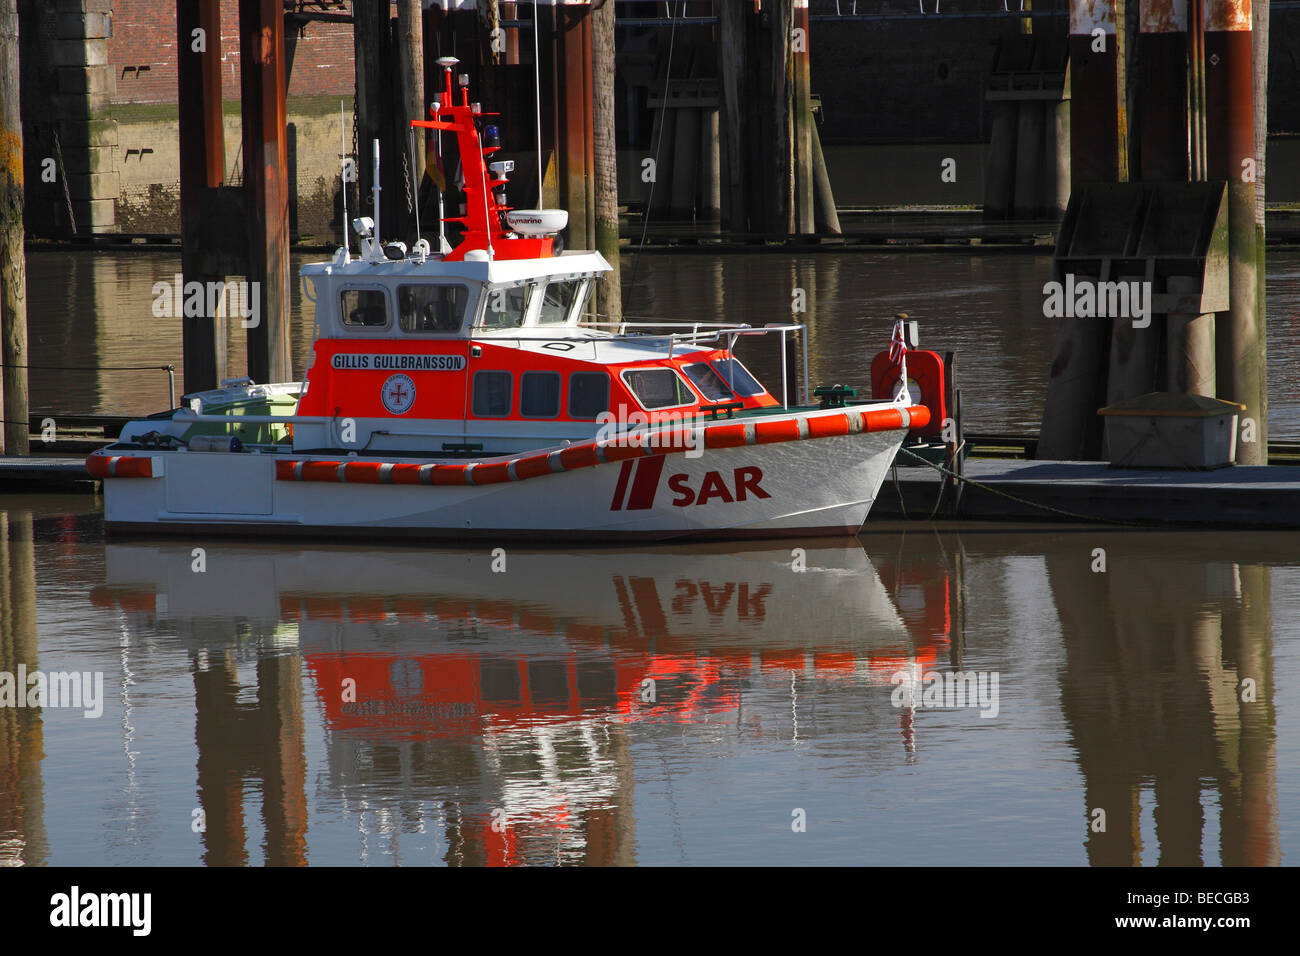 SAR rescue boat at the lock gates between the Elbe River and the Nord-Ostsee-Kanal, Kiel-Canal, boat 'Gillis - Stock Image